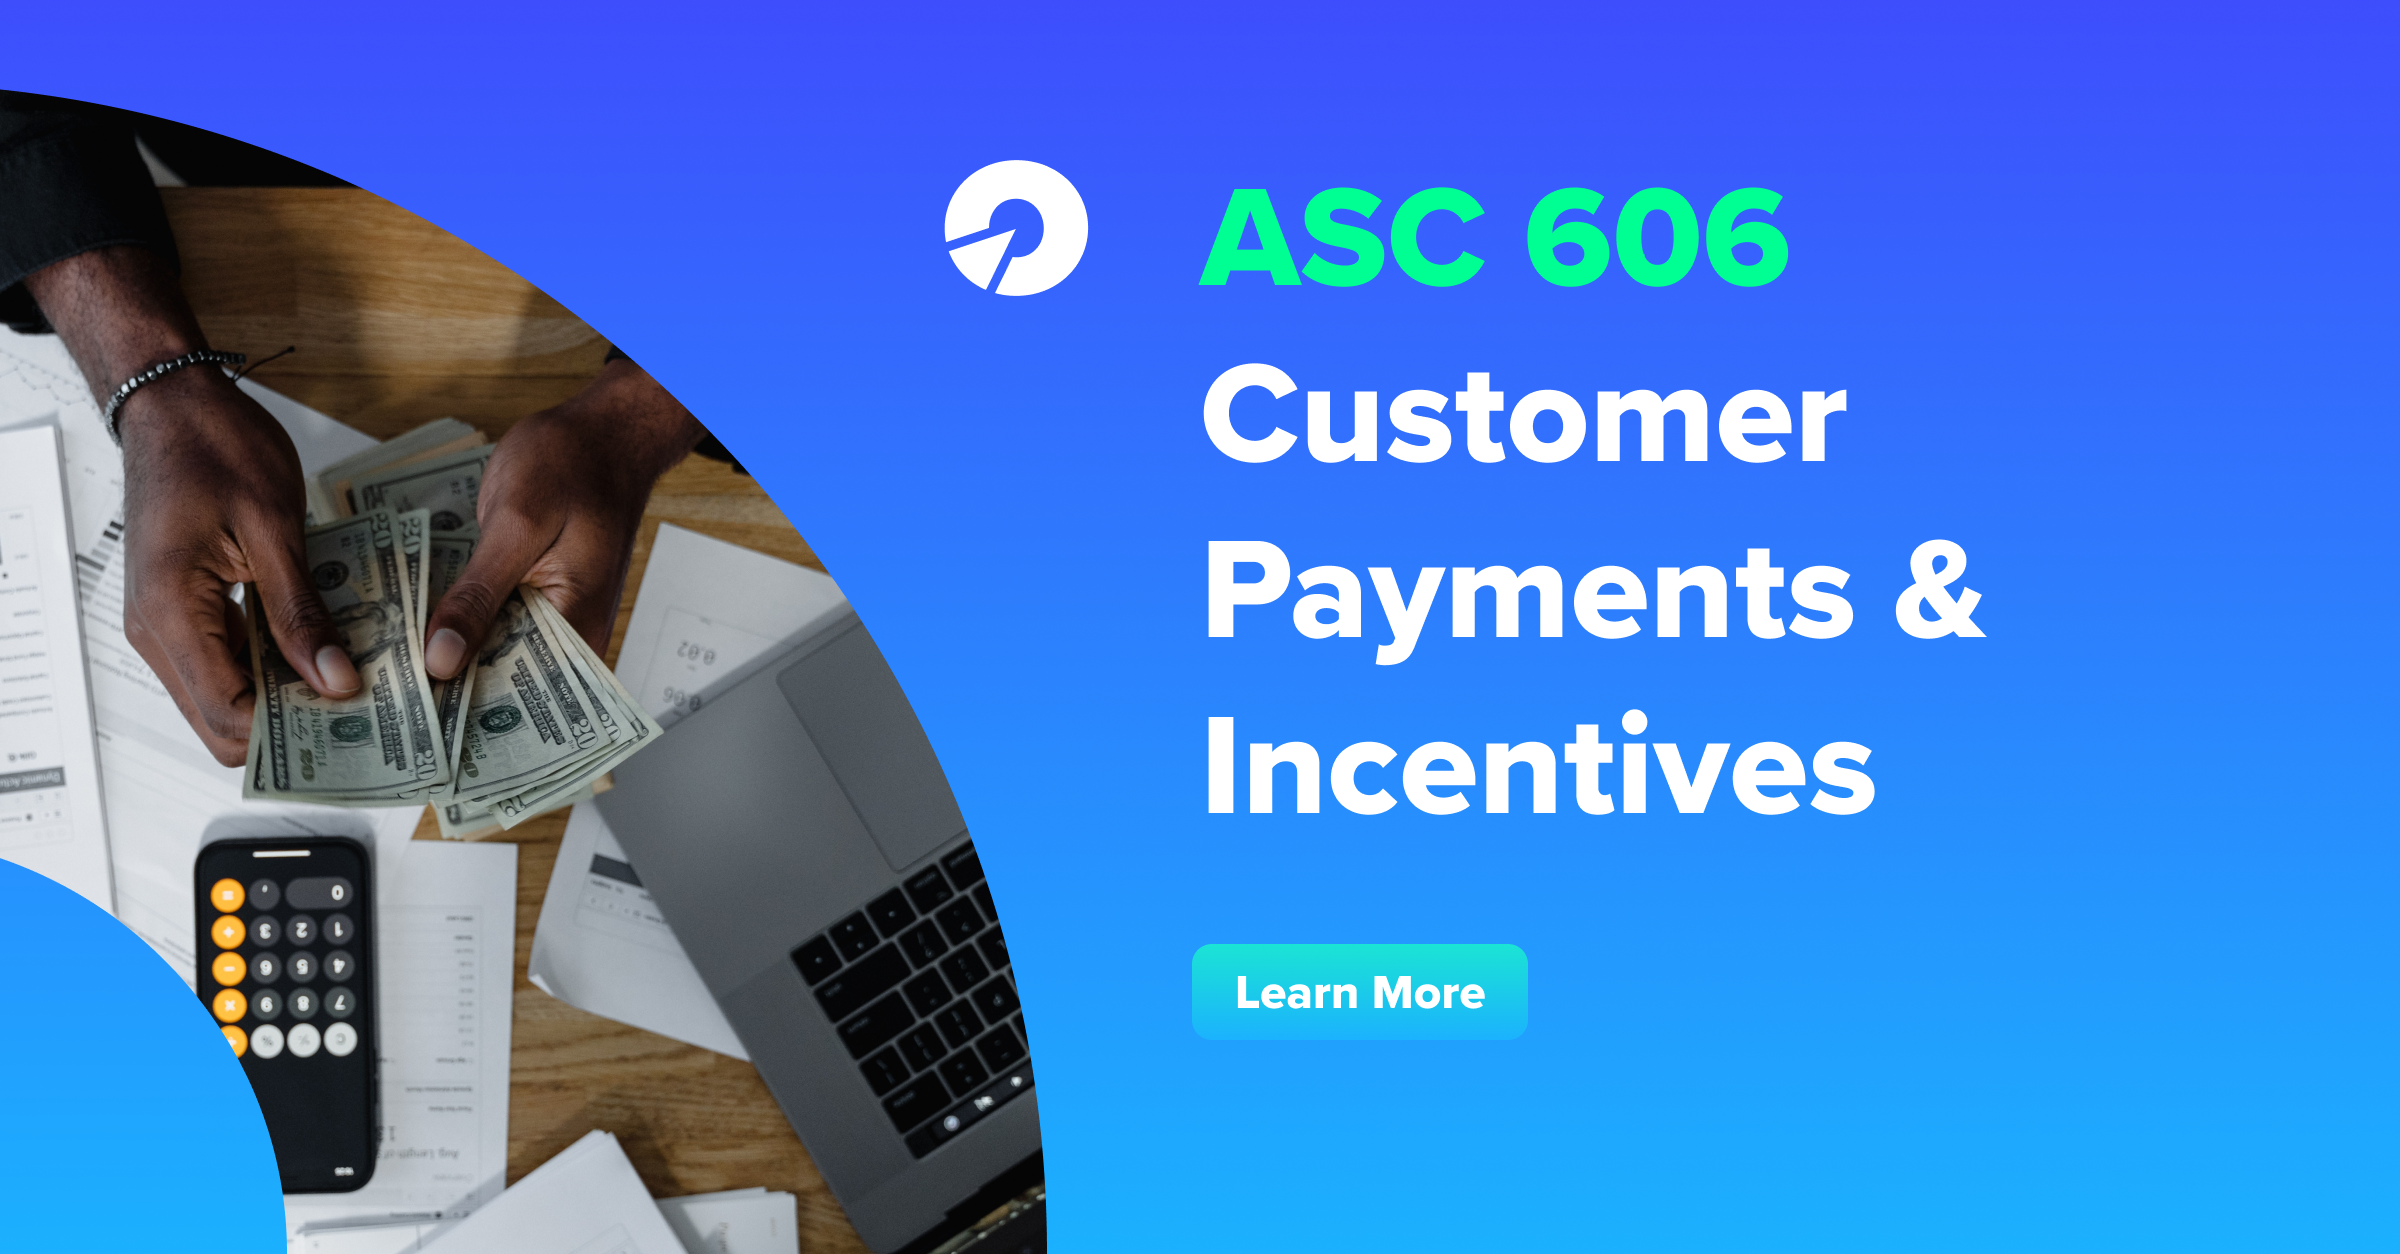 ASC 606 Customer Payments & Incentives